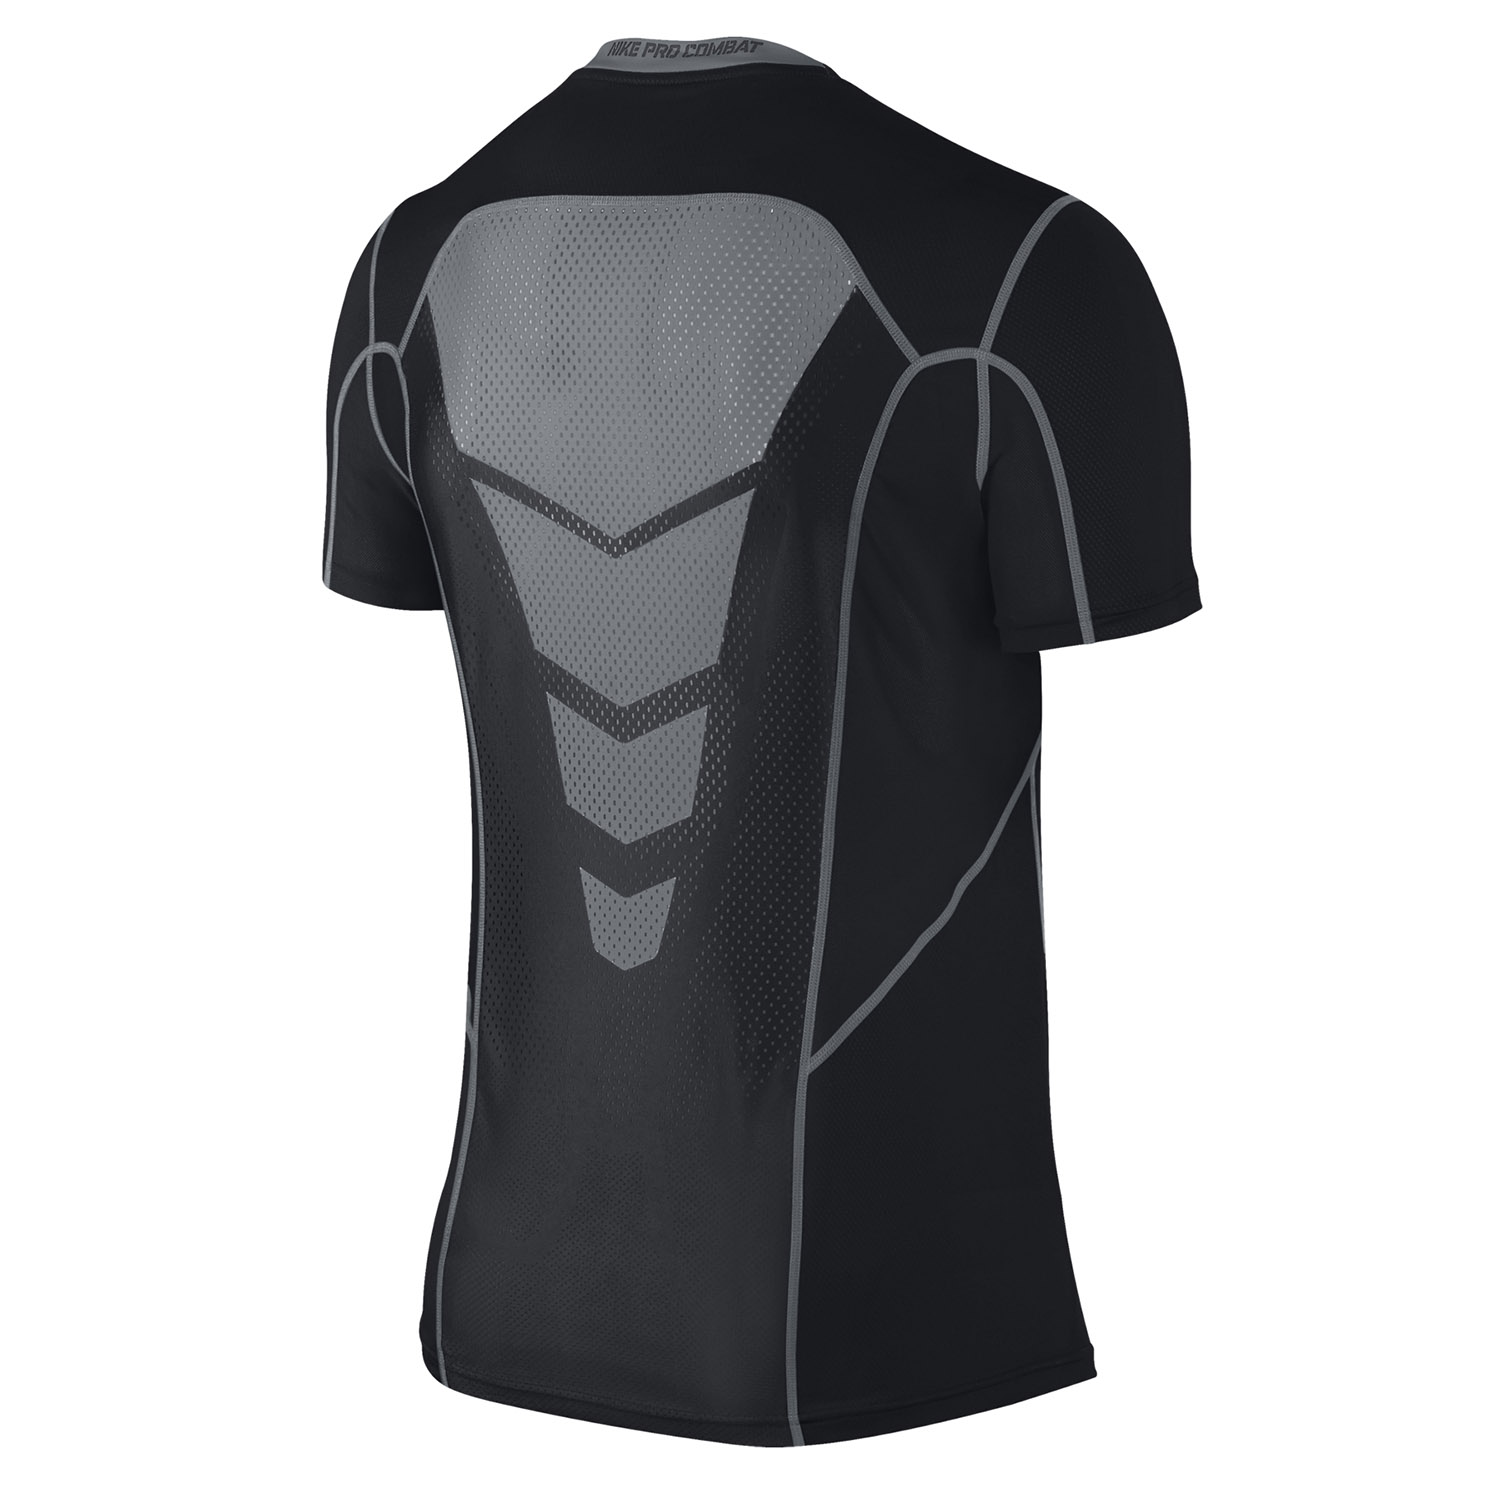 Nike pro combat hypercool fitted short sleeve 3 0 t shirt at for Nike short sleeve shirt